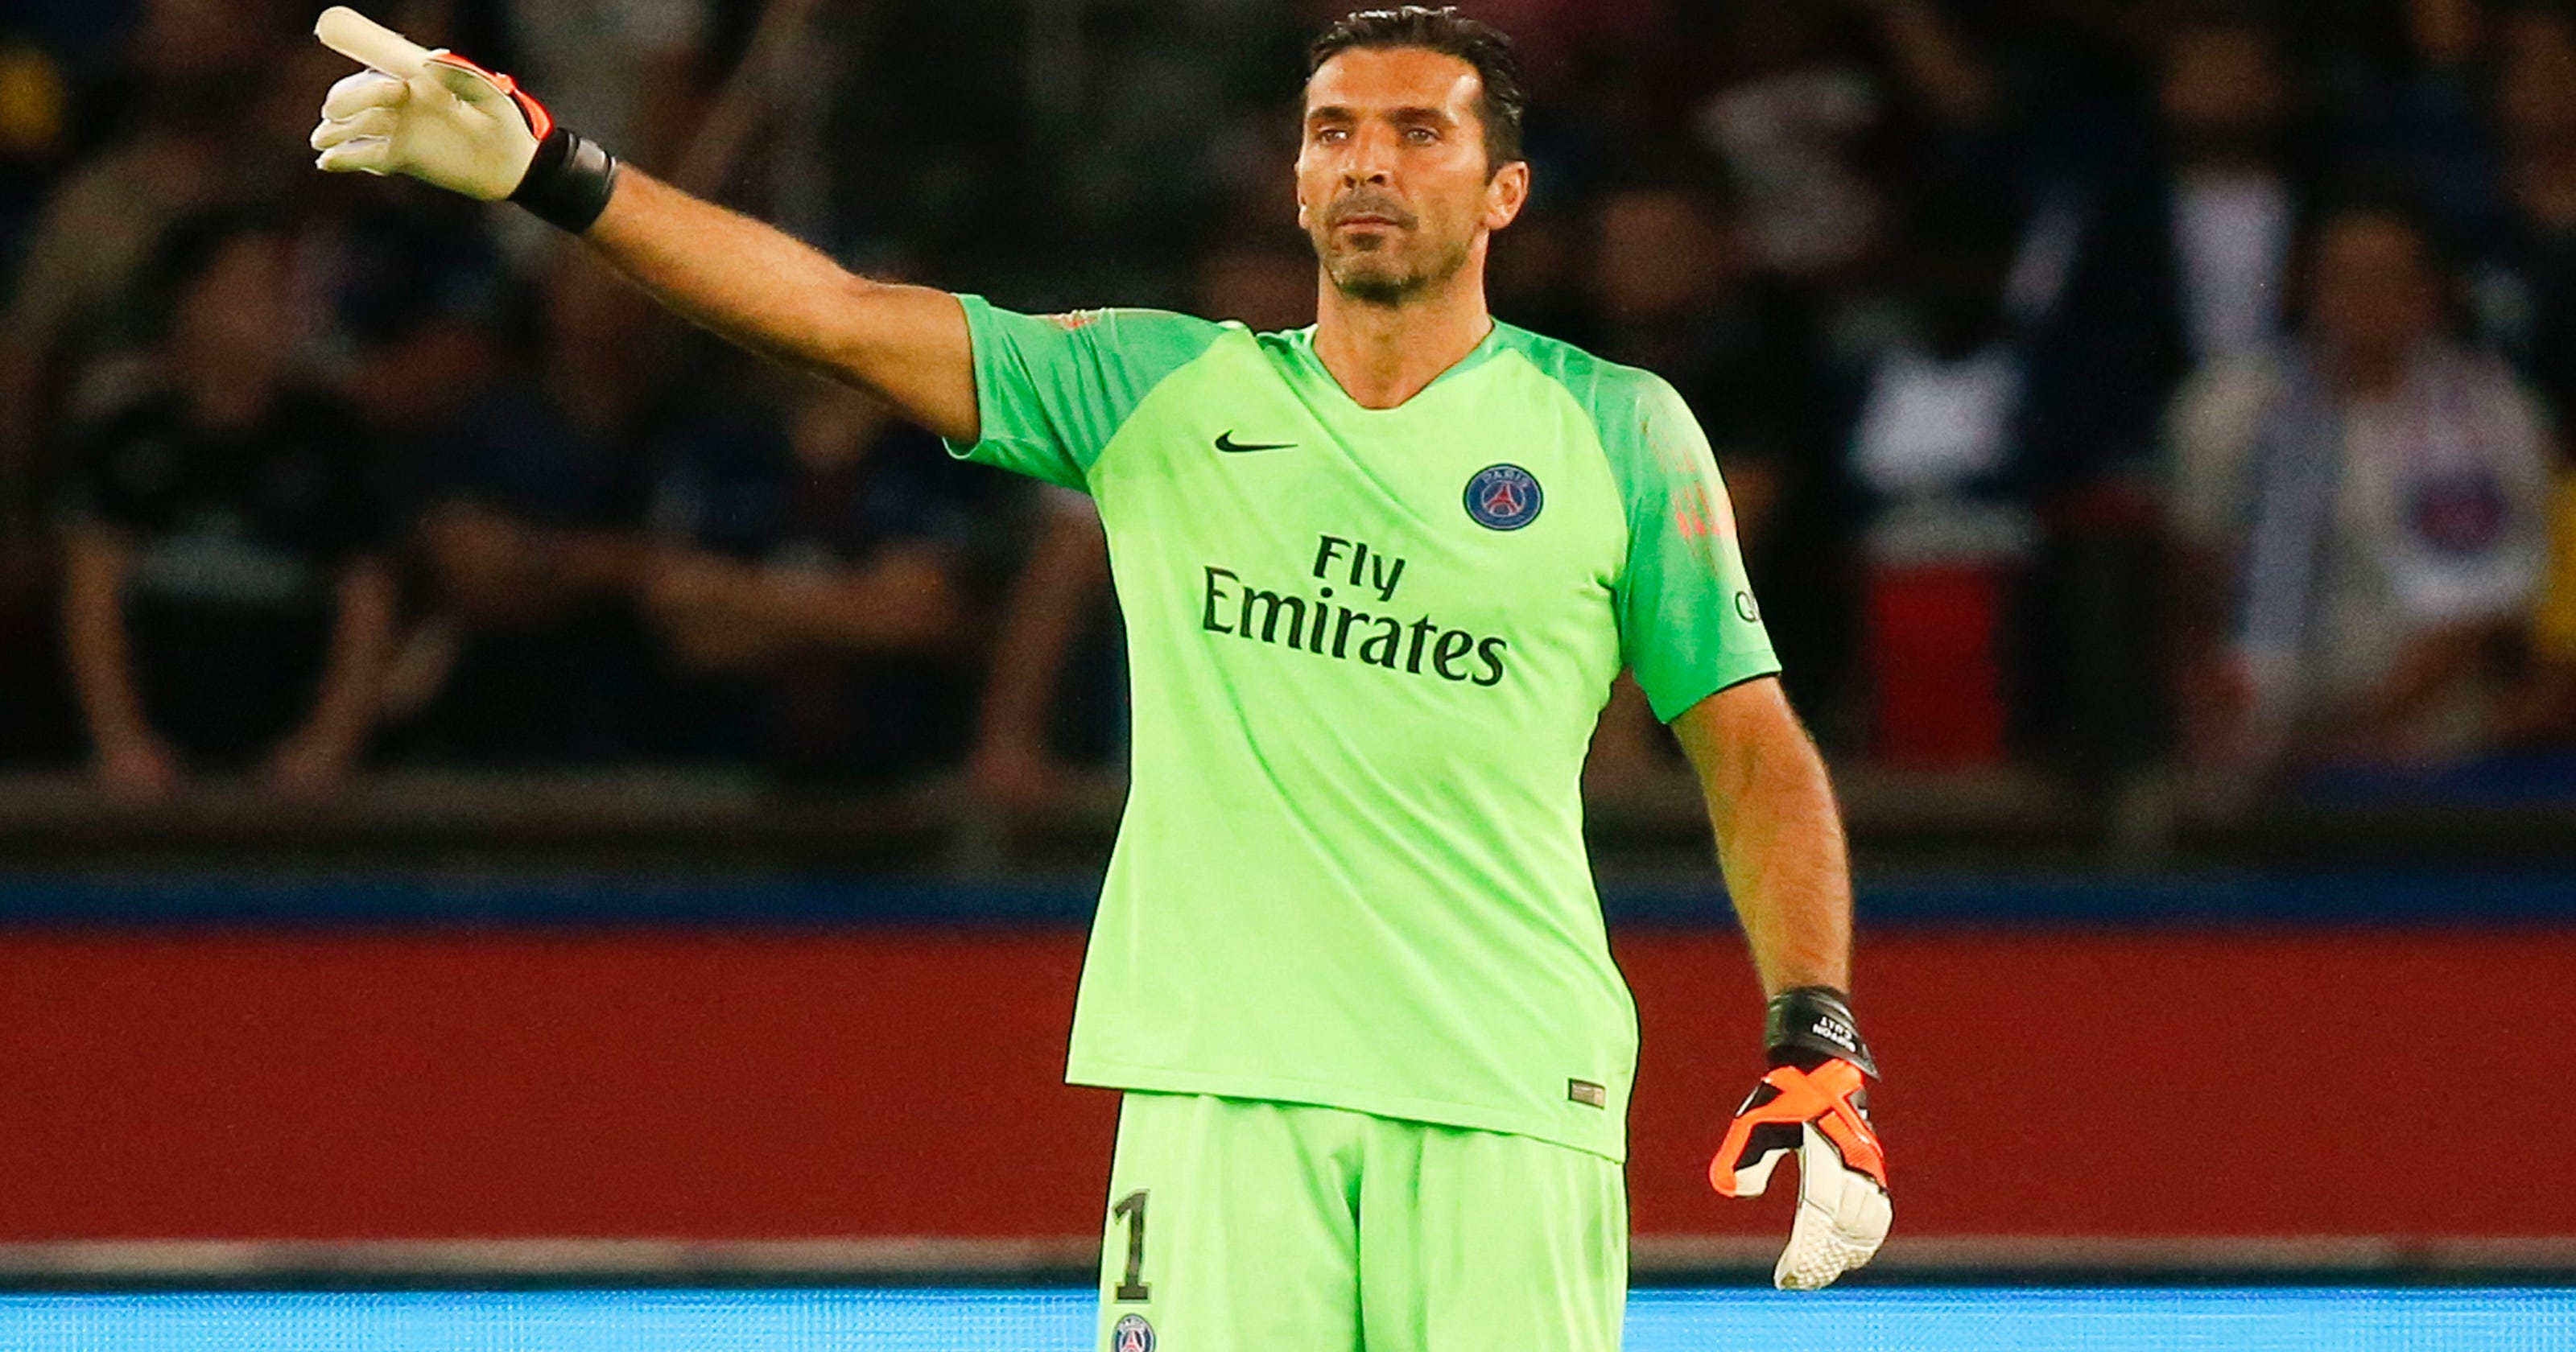 Buffon has a chance to show why PSG signed him 422d483fc